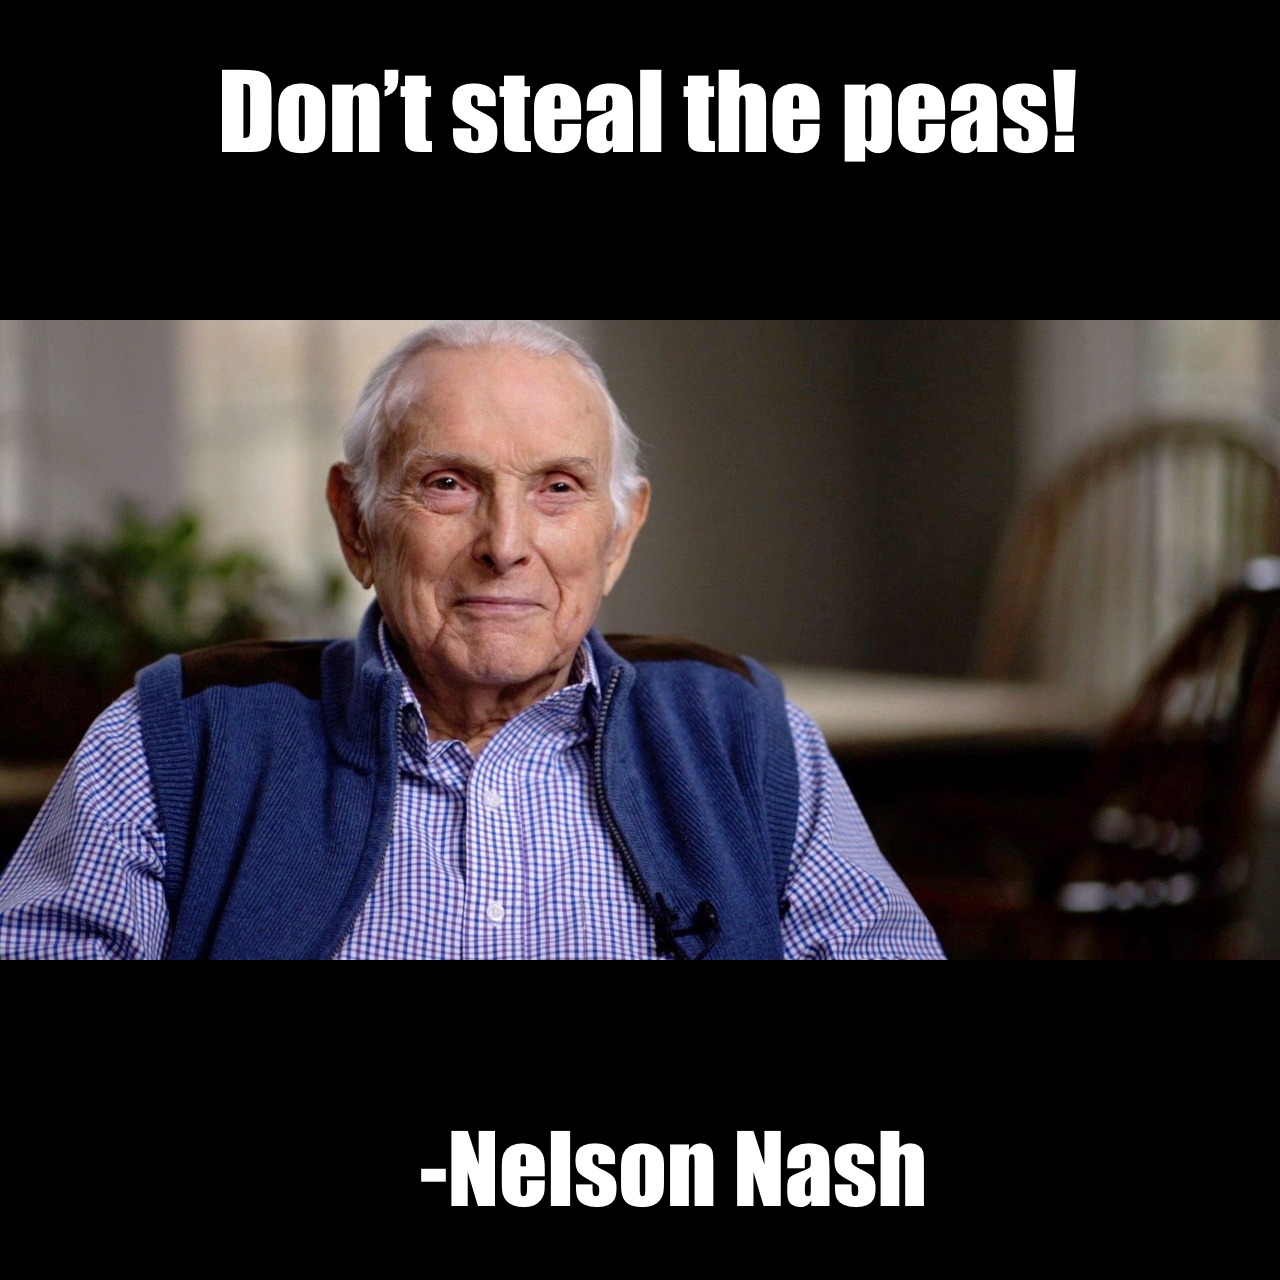 Don't steal the peas